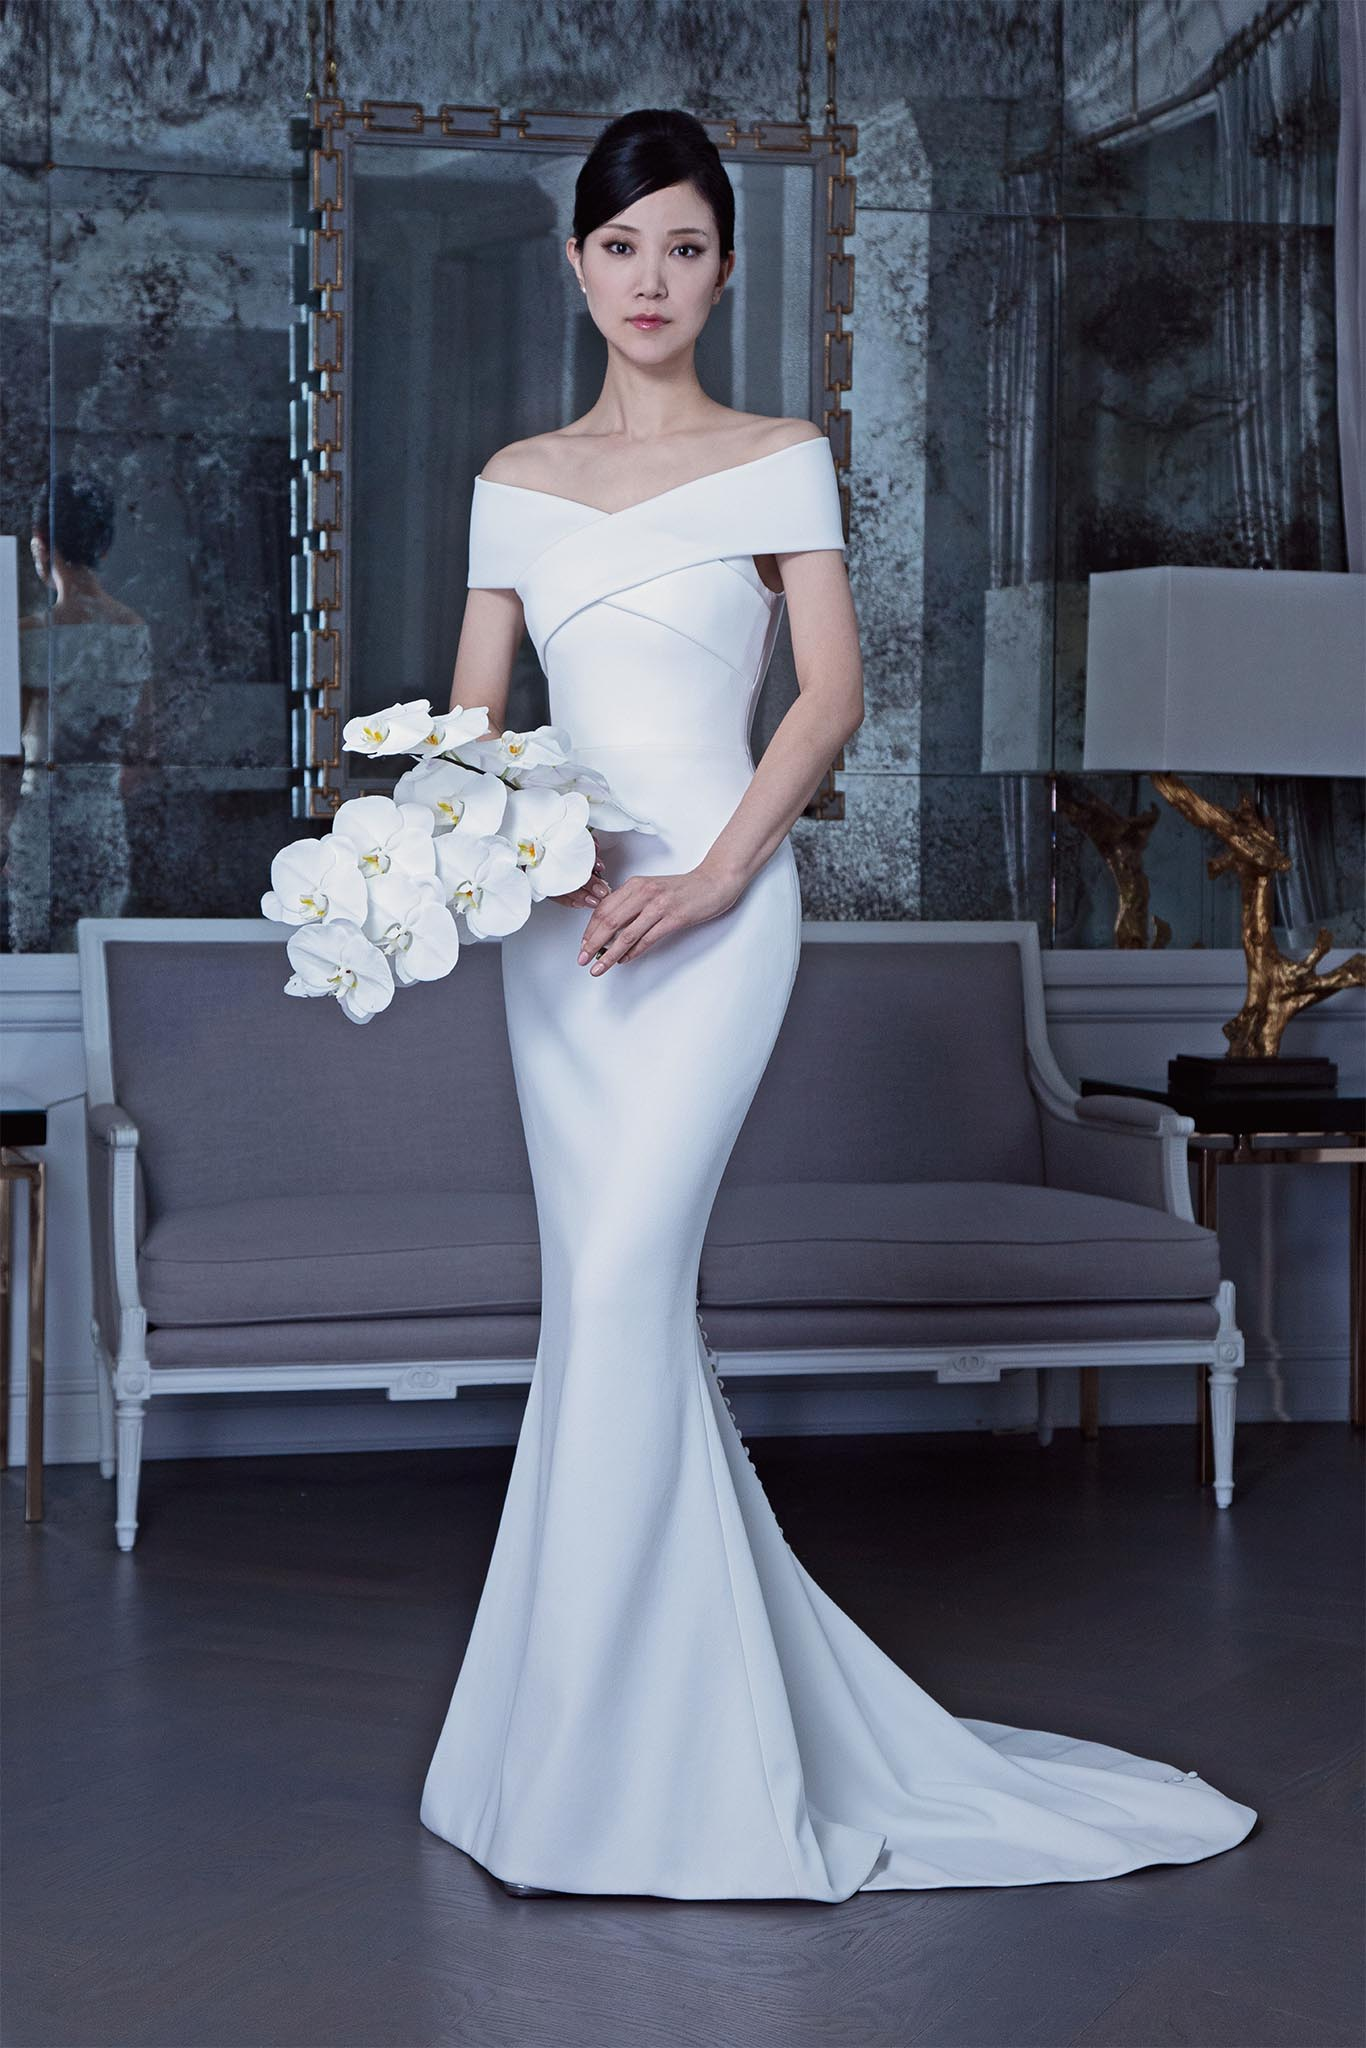 e97efc5922e81 Romona Keveza RK9503 wedding dress. Price available on request